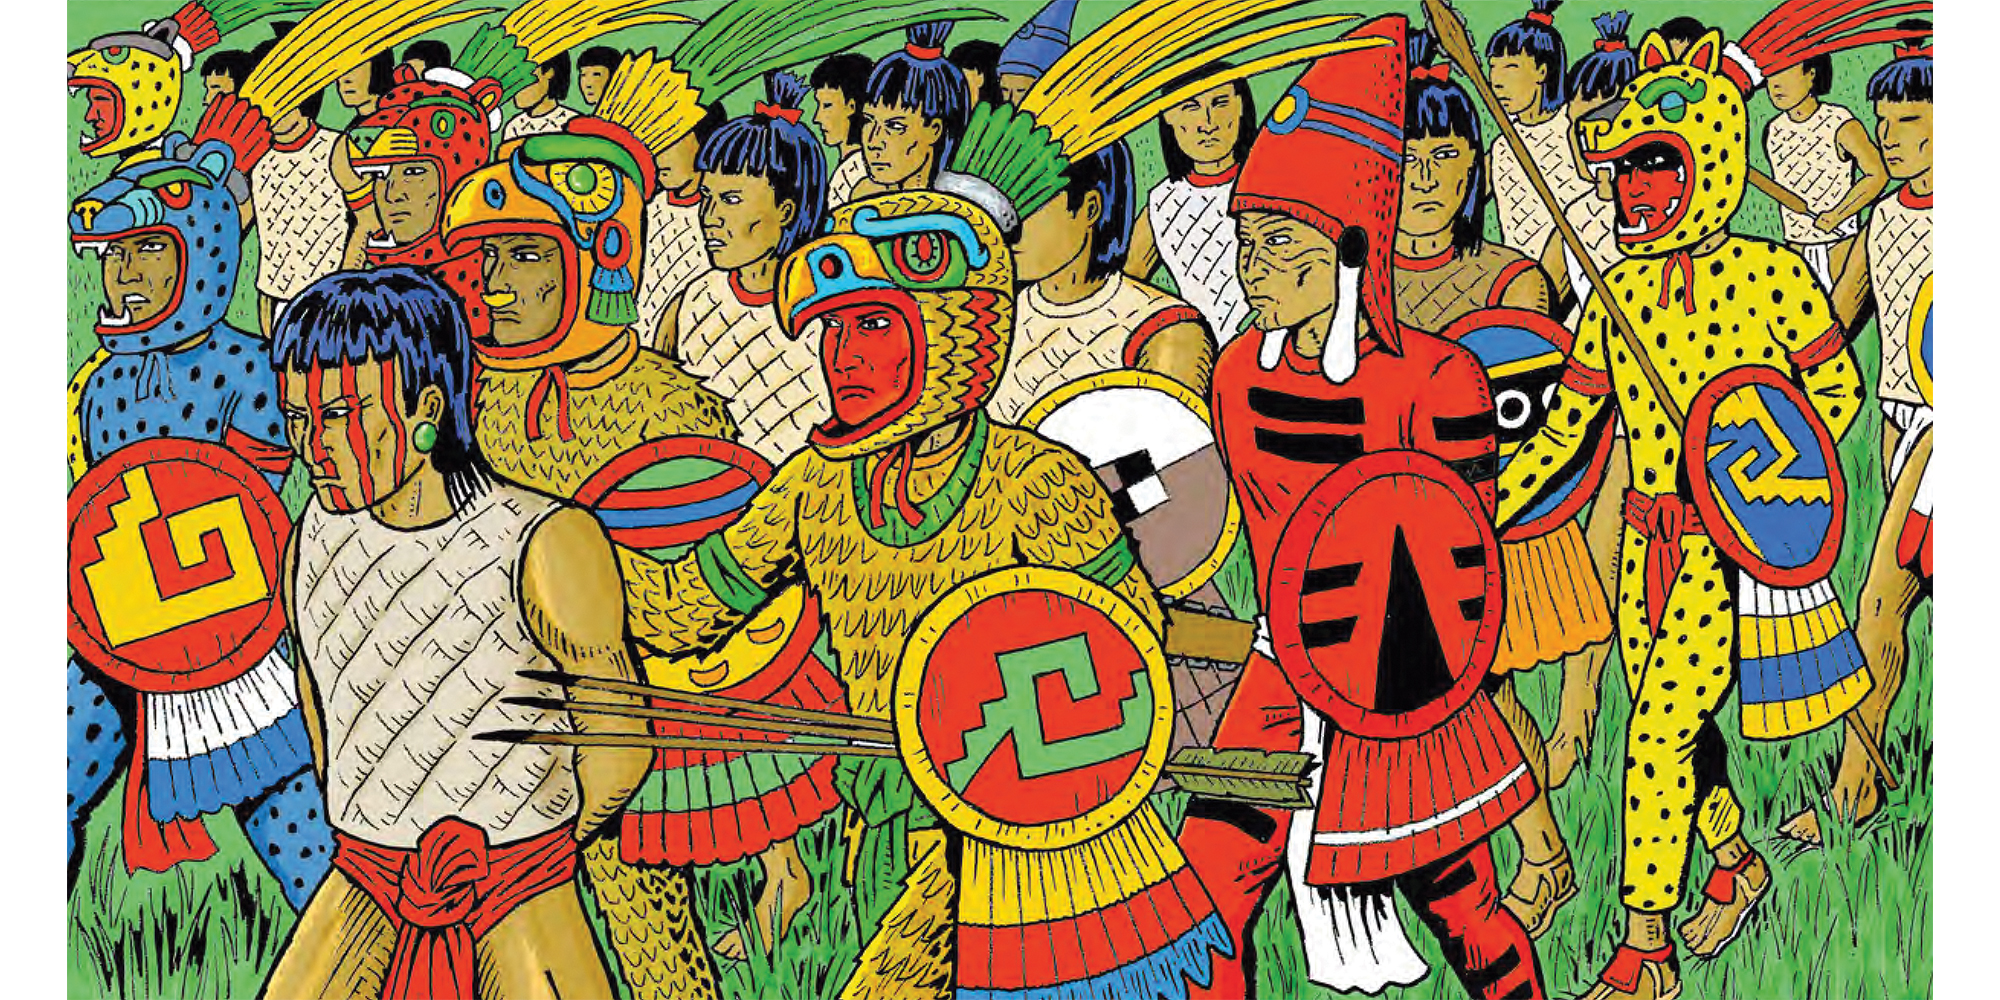 An interior Illustration from Gord Hill's The 500 Years of Indigenous Resistance Comic Book